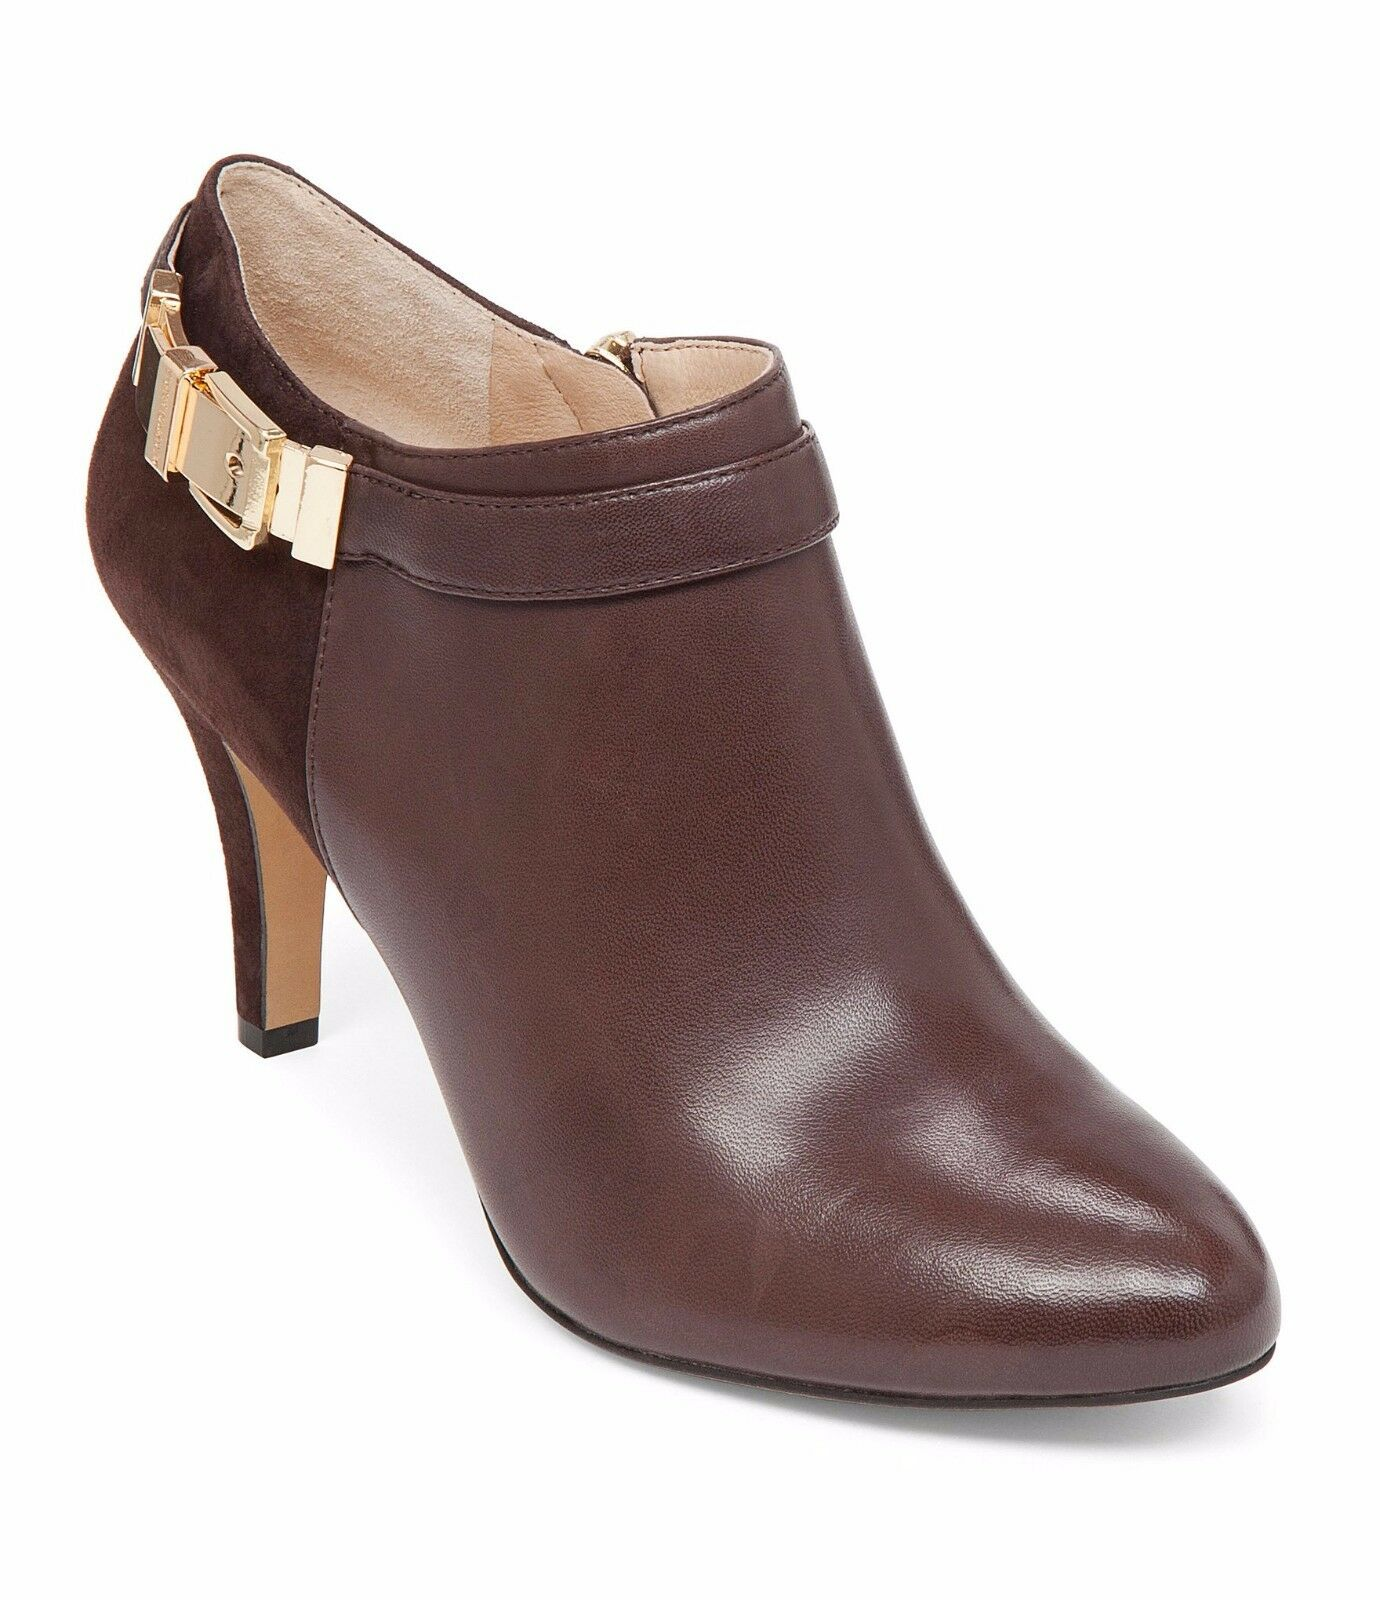 femmes Vince Camuto Vanny Ankle bottes, Tailles 7-10 Chocolate Chocolate Chocolate Leather VC-Vanny LE 527fa3